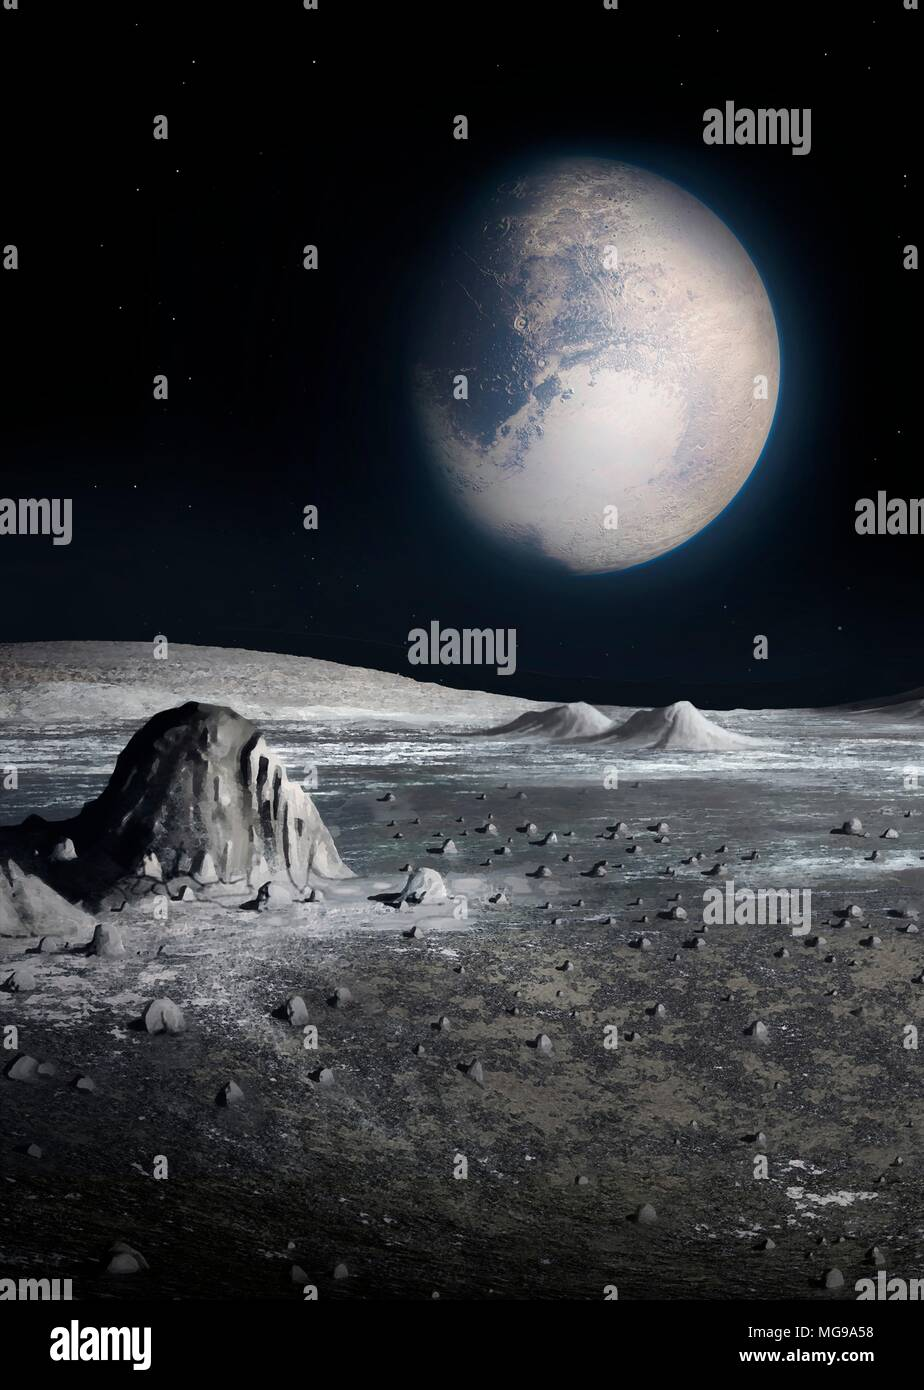 Illustration of a view of Pluto seen from the surface of its largest moon Charon. Because Pluto and Charon are tidally locked, they keep the same face towards each other at all times, as the Moon does to the Earth. So if one stood on Charon (or Pluto) the other world would stay fixed in the sky - never setting or rising, but still cycling through its phases. And if one were on the wrong hemisphere of Pluto (or Charon) one would never see the other world. - Stock Image